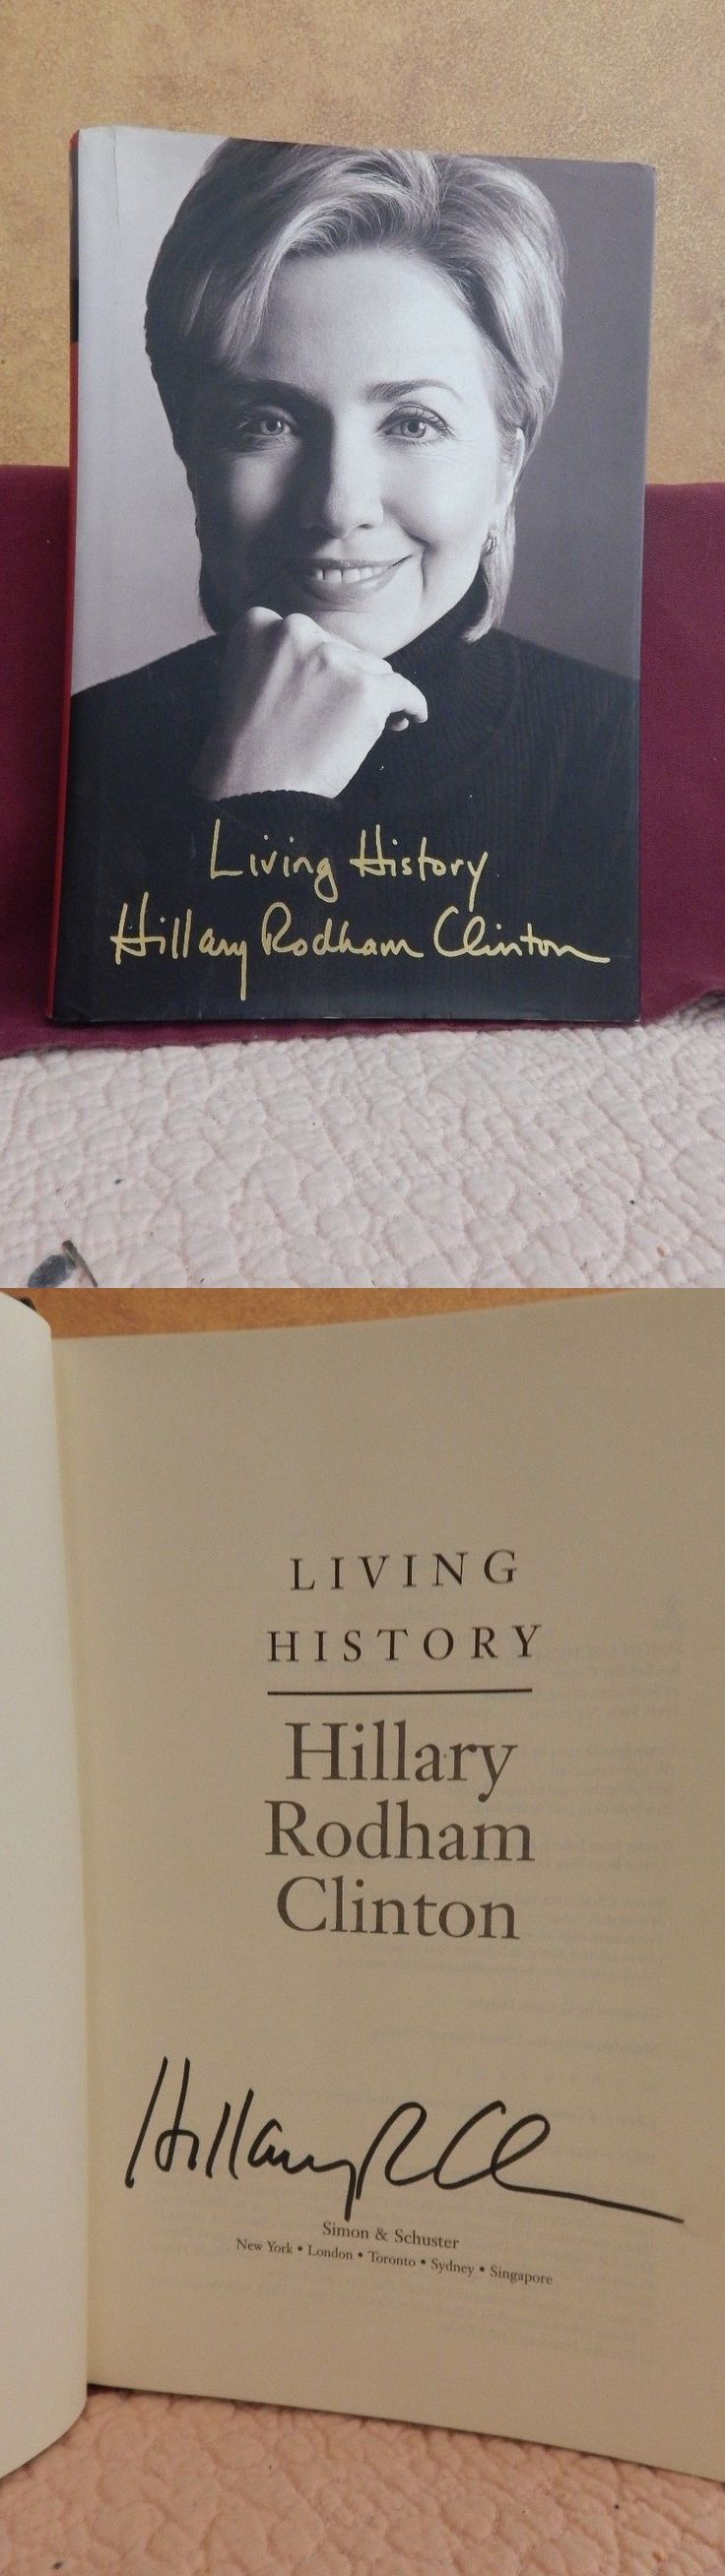 Hillary Clinton: Signed And Autographed Hillary Rodham Clinton Book Living History -> BUY IT NOW ONLY: $30 on eBay!